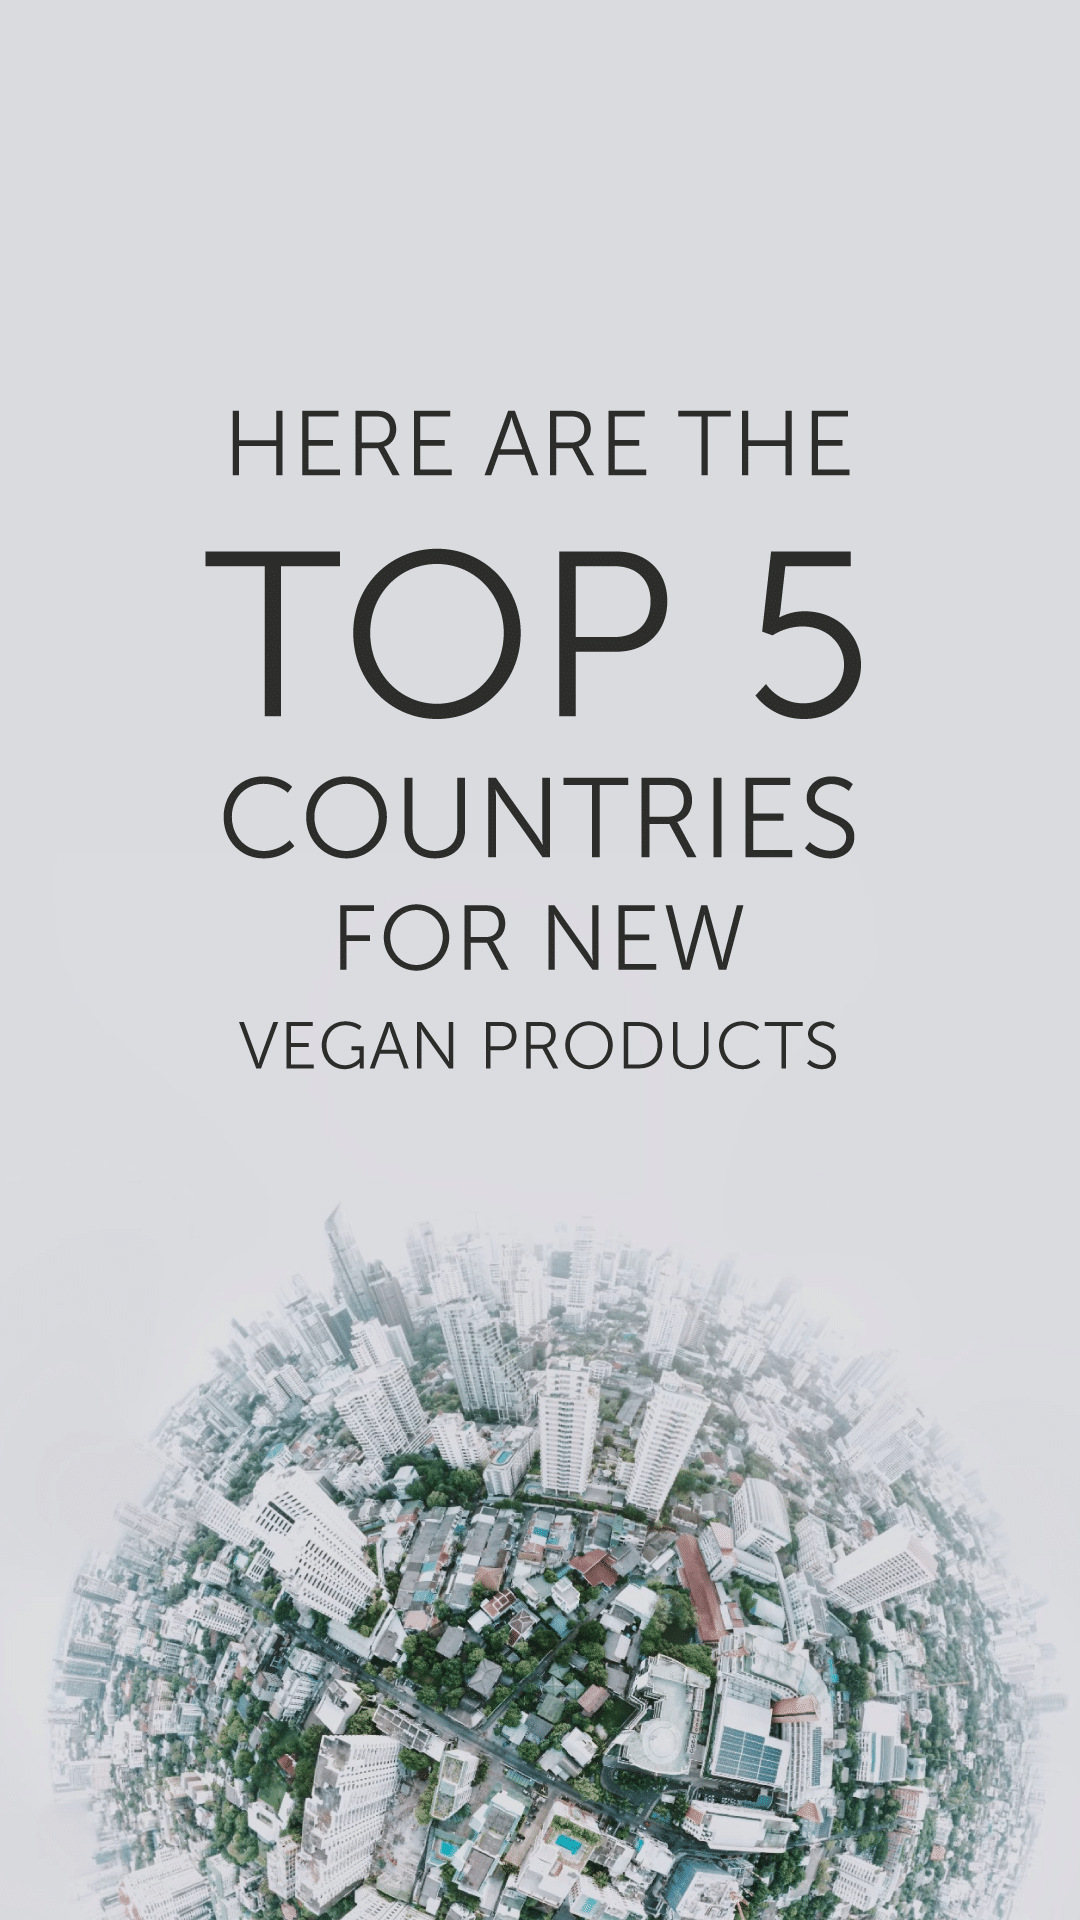 Here Are the Top 5 Countries for New Vegan Products